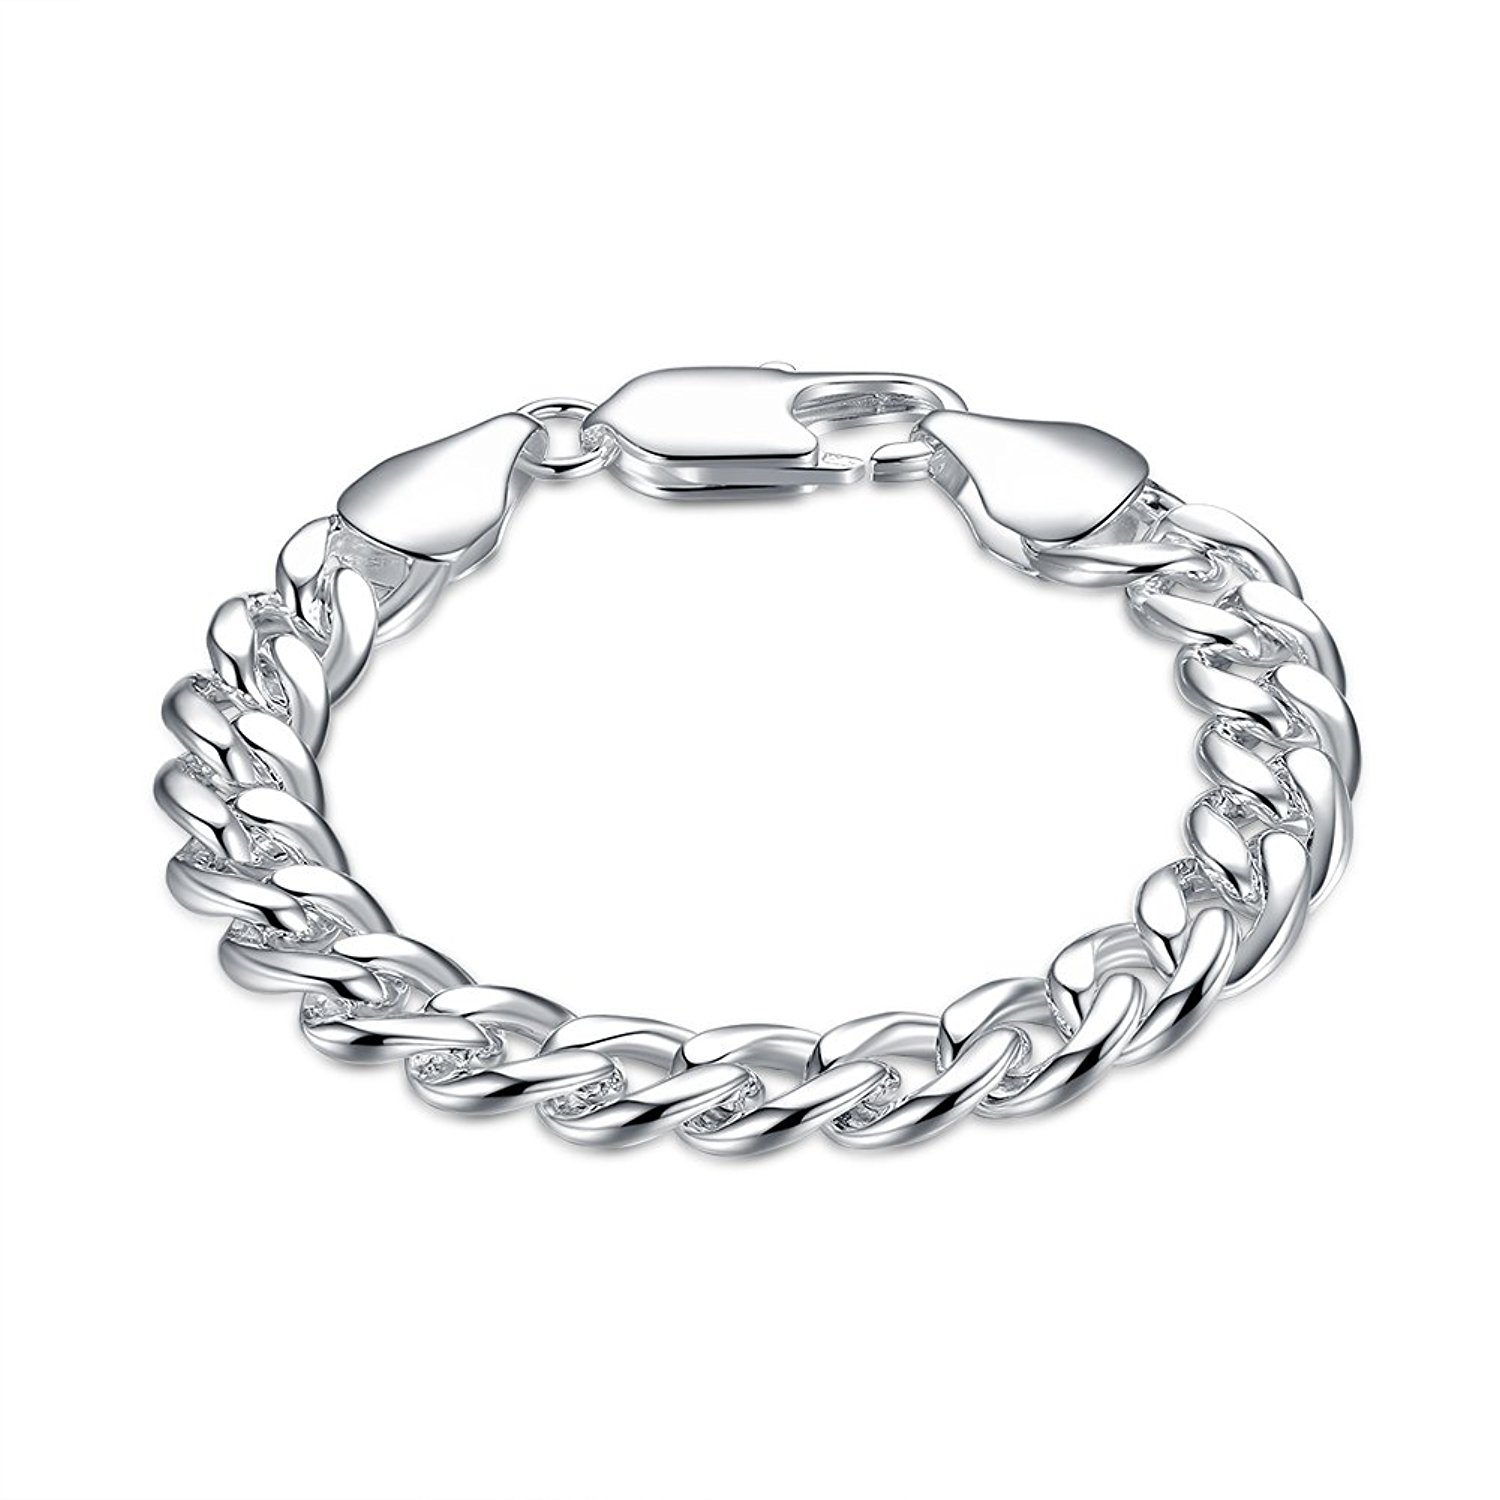 Fashion Unisex Charms Jewelry Plate With Silver Romantic Snake Chain Bracelets